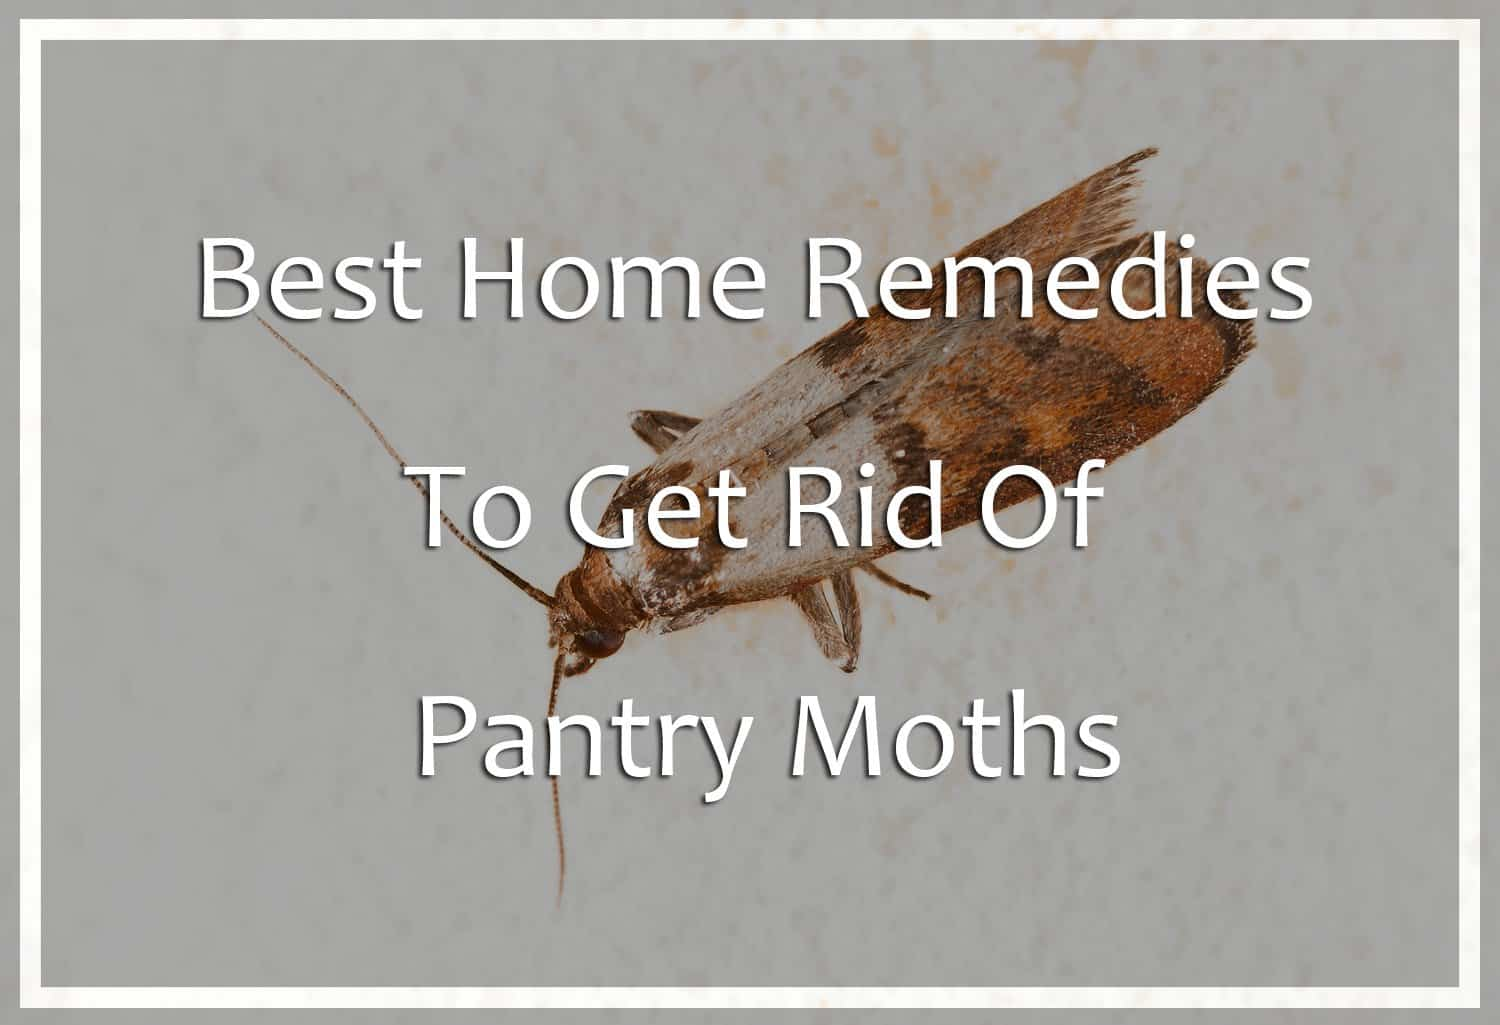 Home Remedies to Get Rid of Pantry Moths